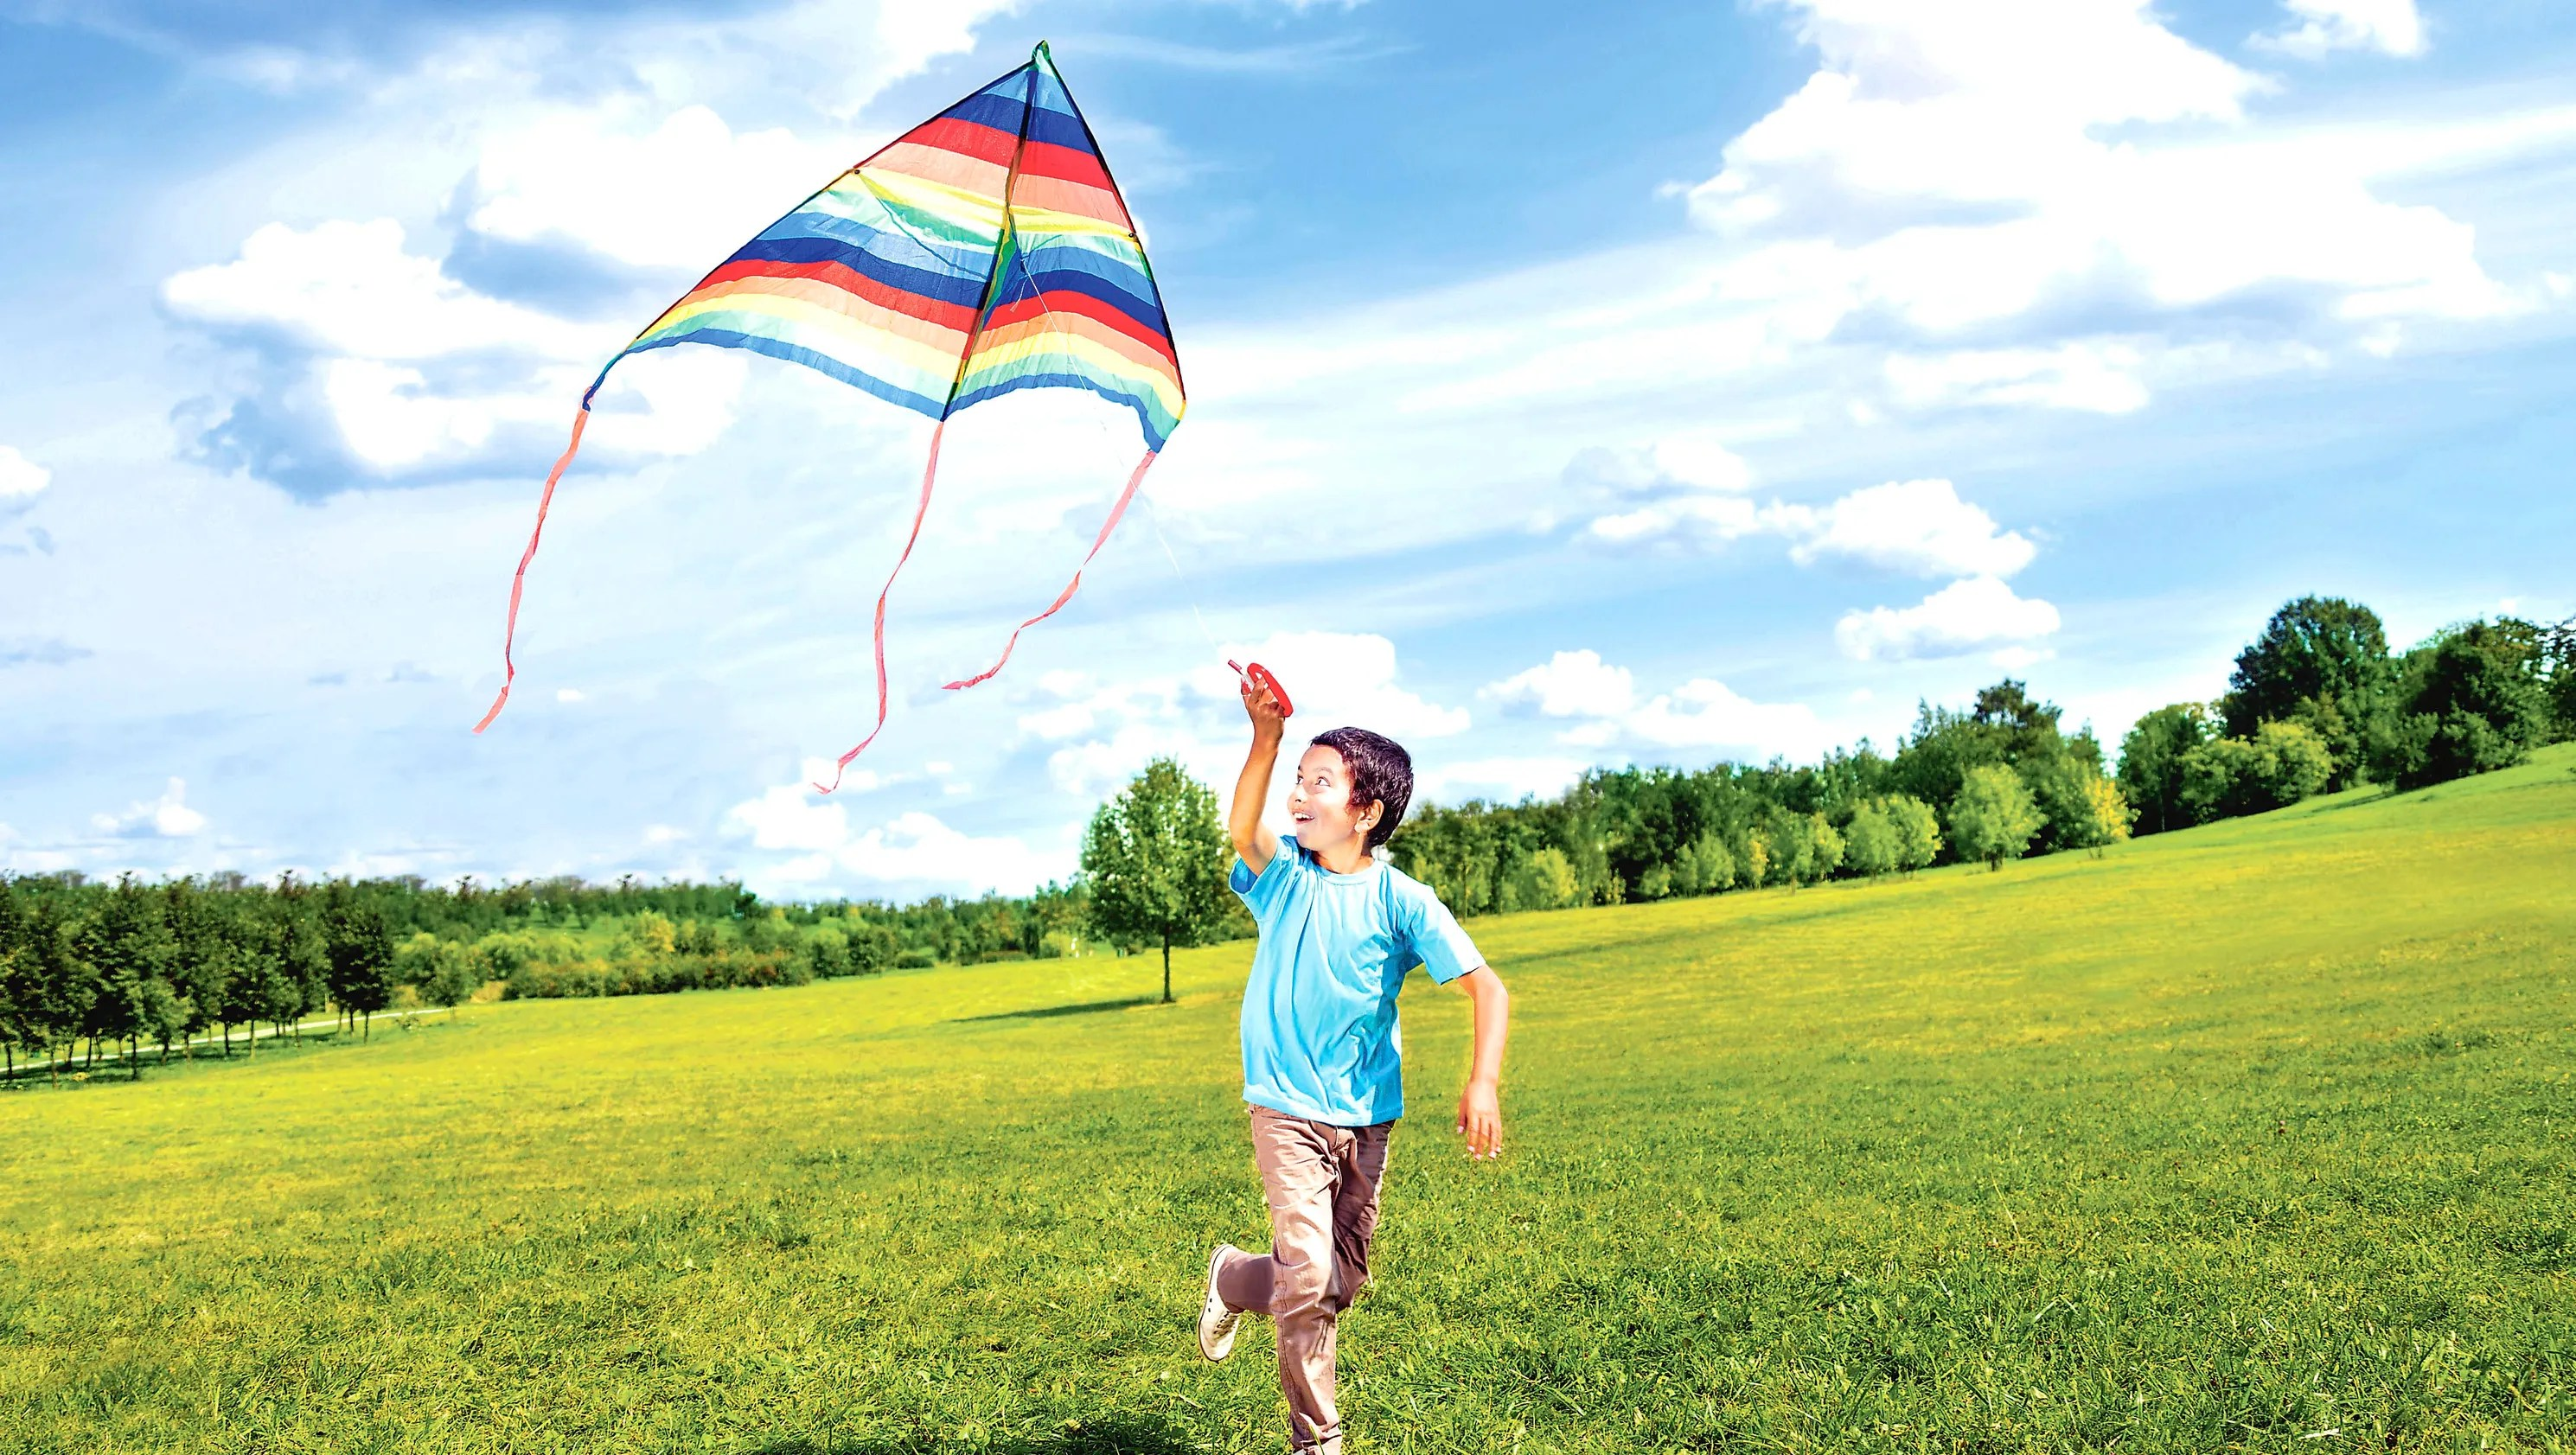 March Is A Great Time For Upstate Kids To Fly Kites